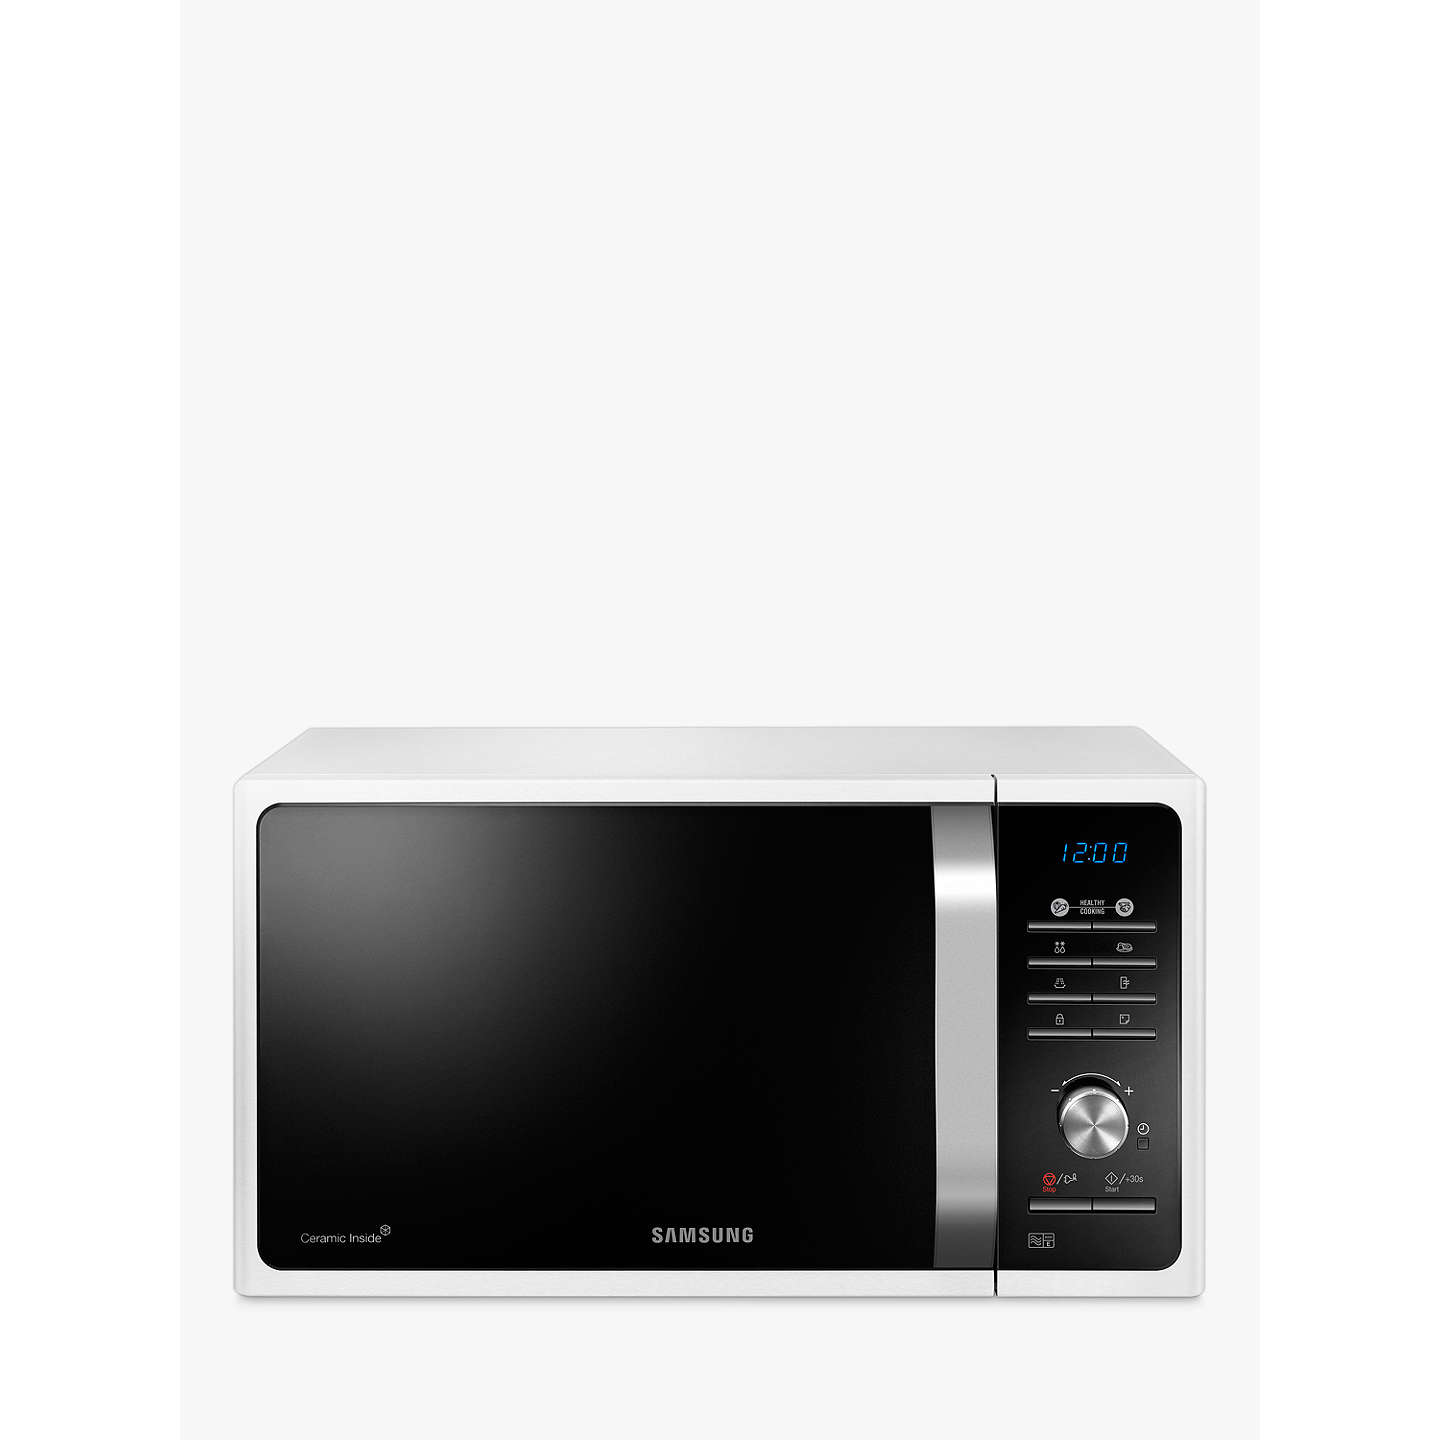 Samsung Ms23f301taw Solo Microwave Oven White Online At Johnlewis